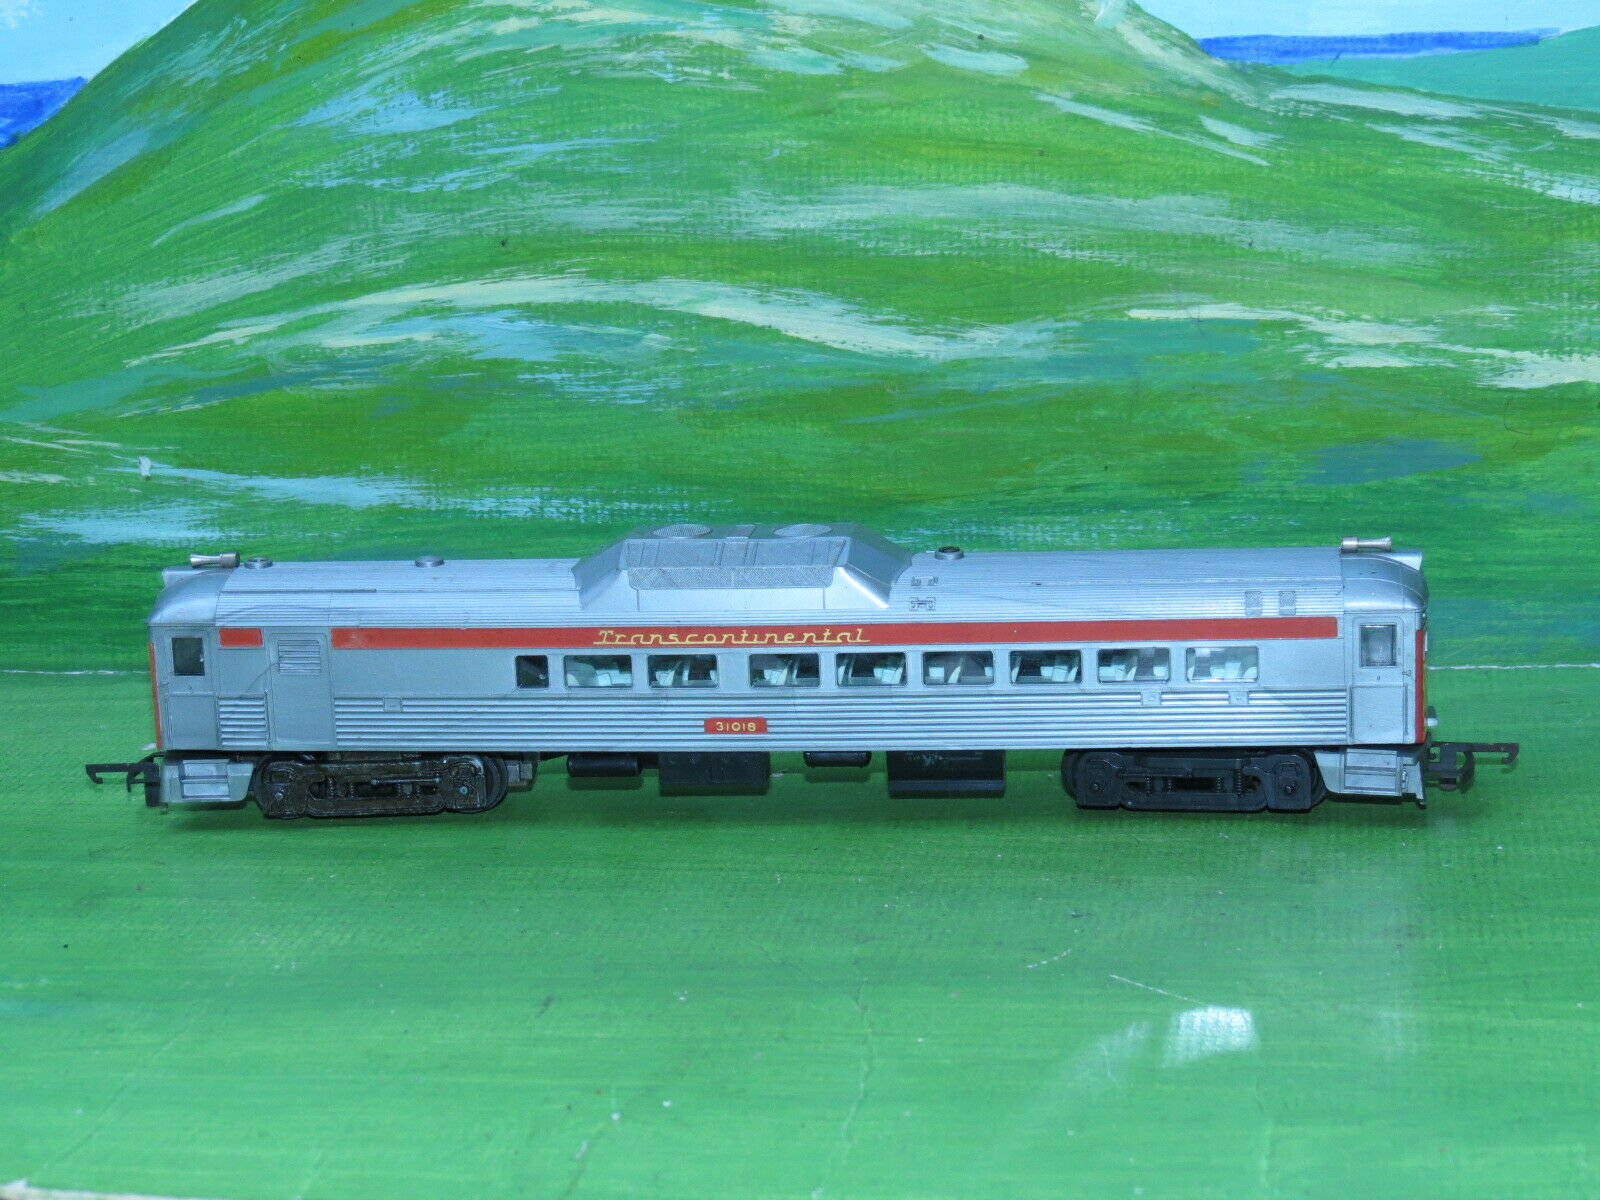 Rare Triang Budd R352 Transcontinental Diesel Railauto 31018 with motor